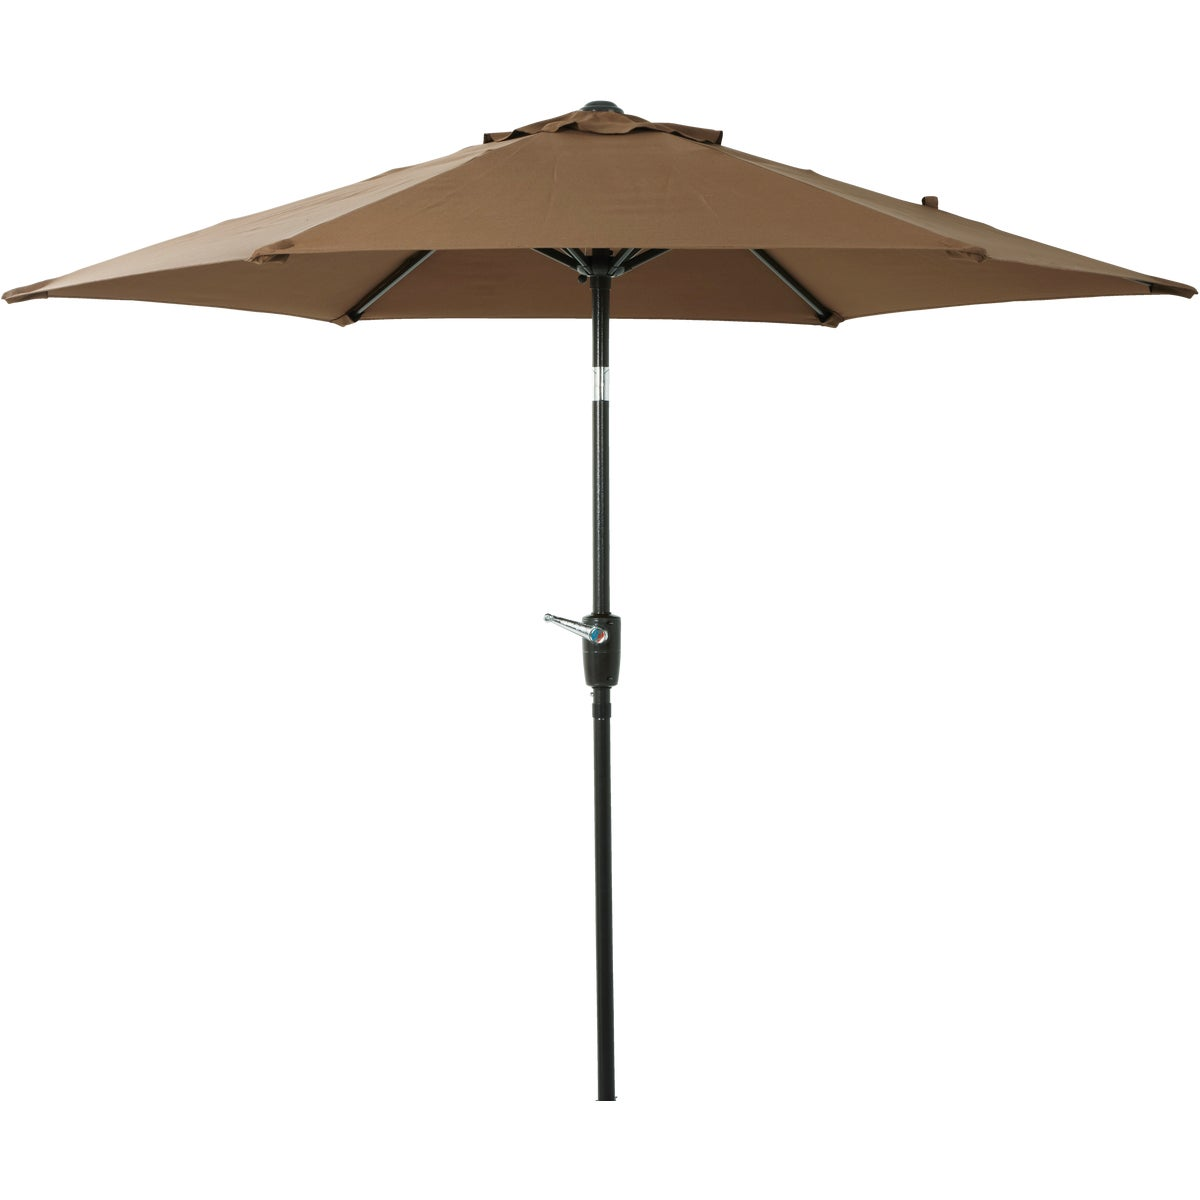 7.5' BROWN UMBRELLA